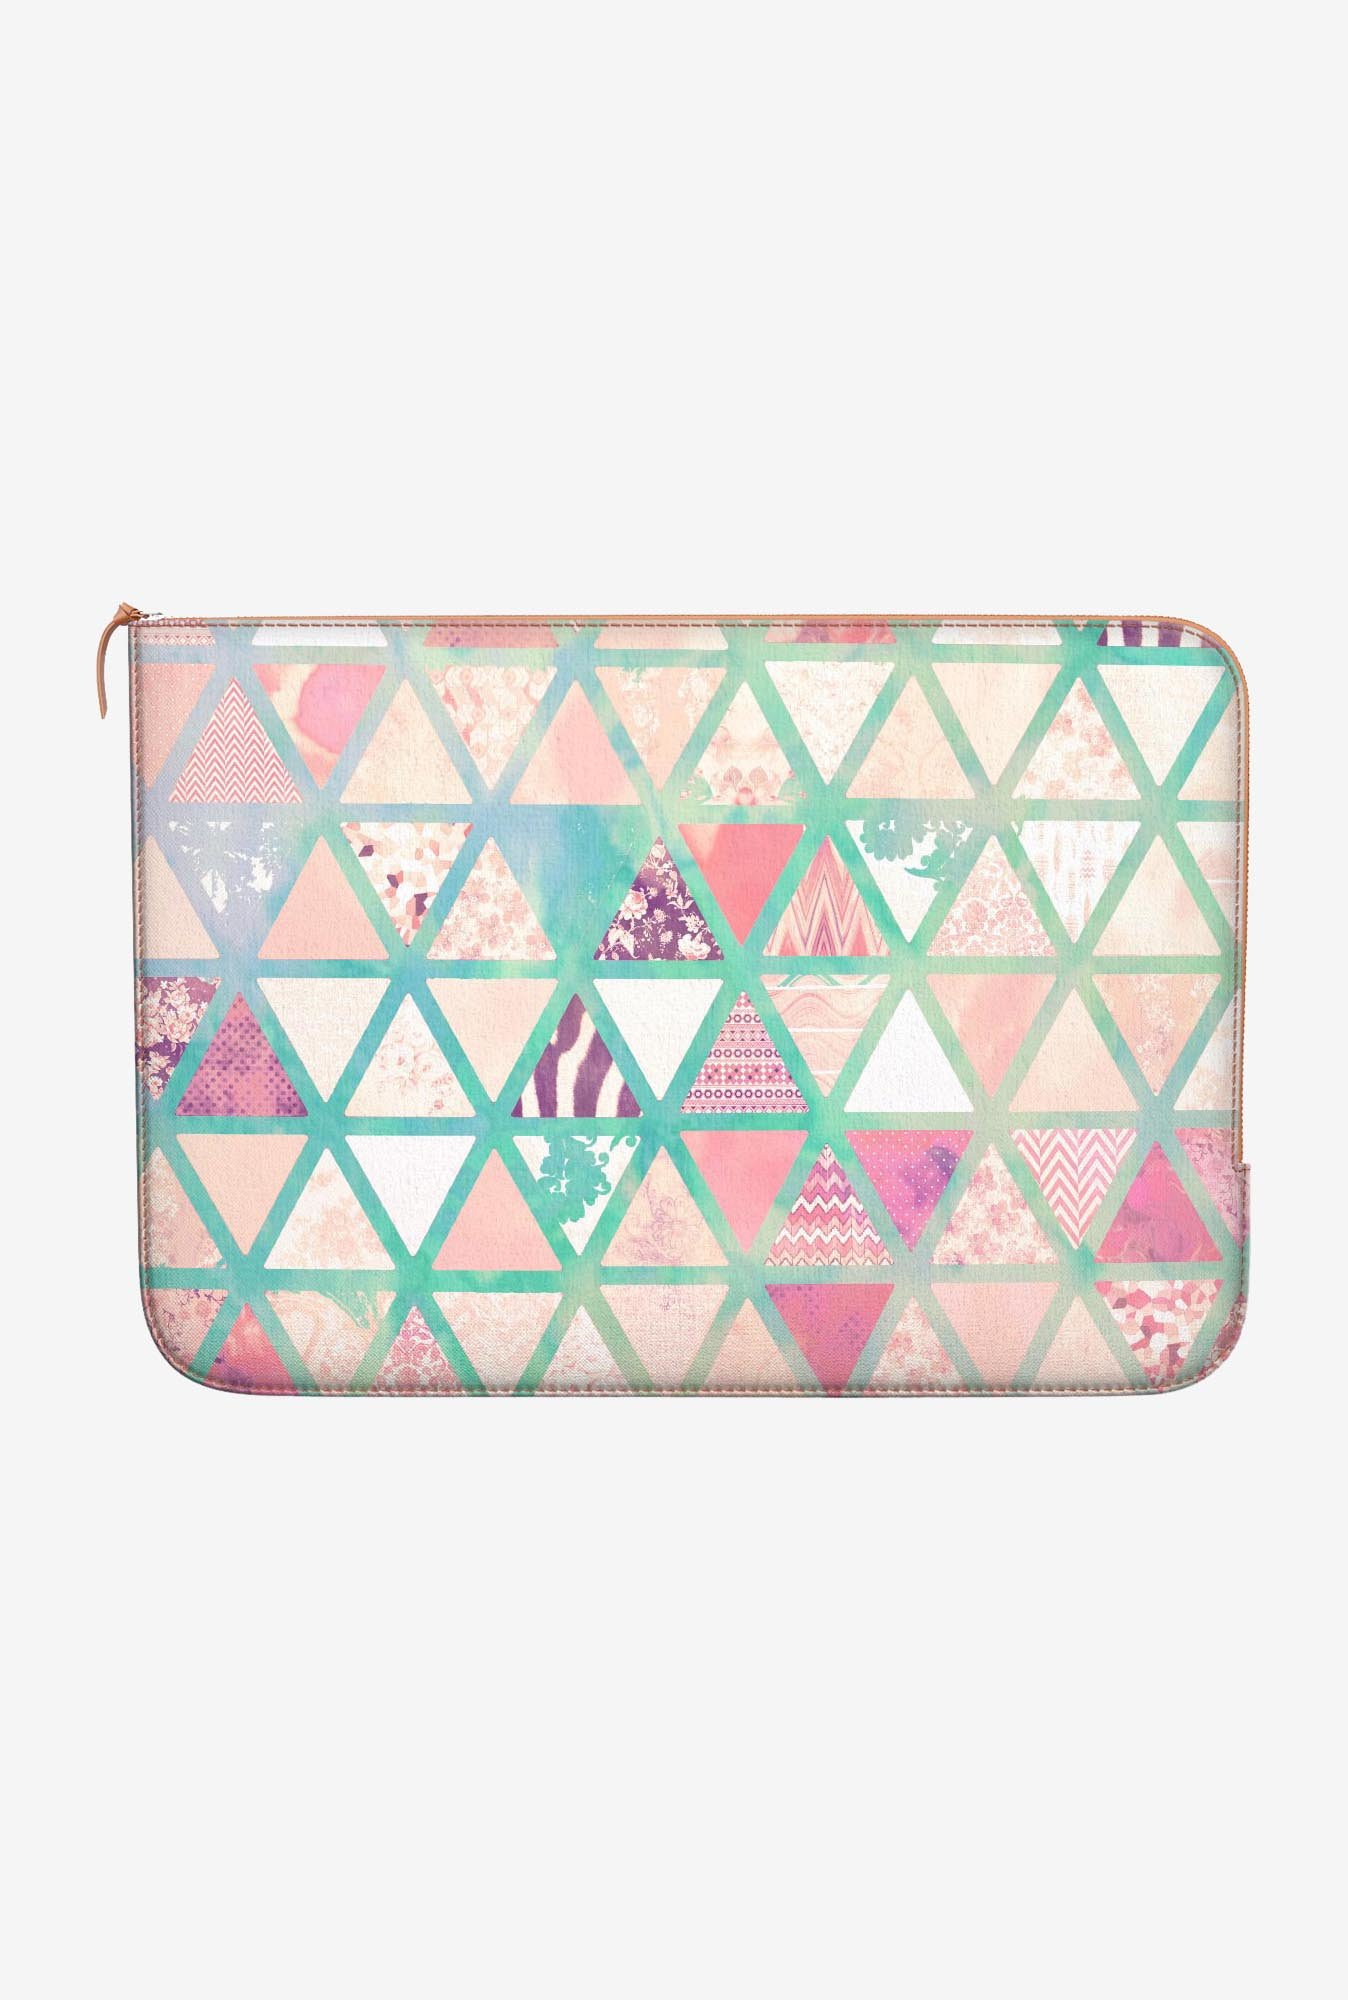 DailyObjects Triangles Patch MacBook Air 13 Zippered Sleeve